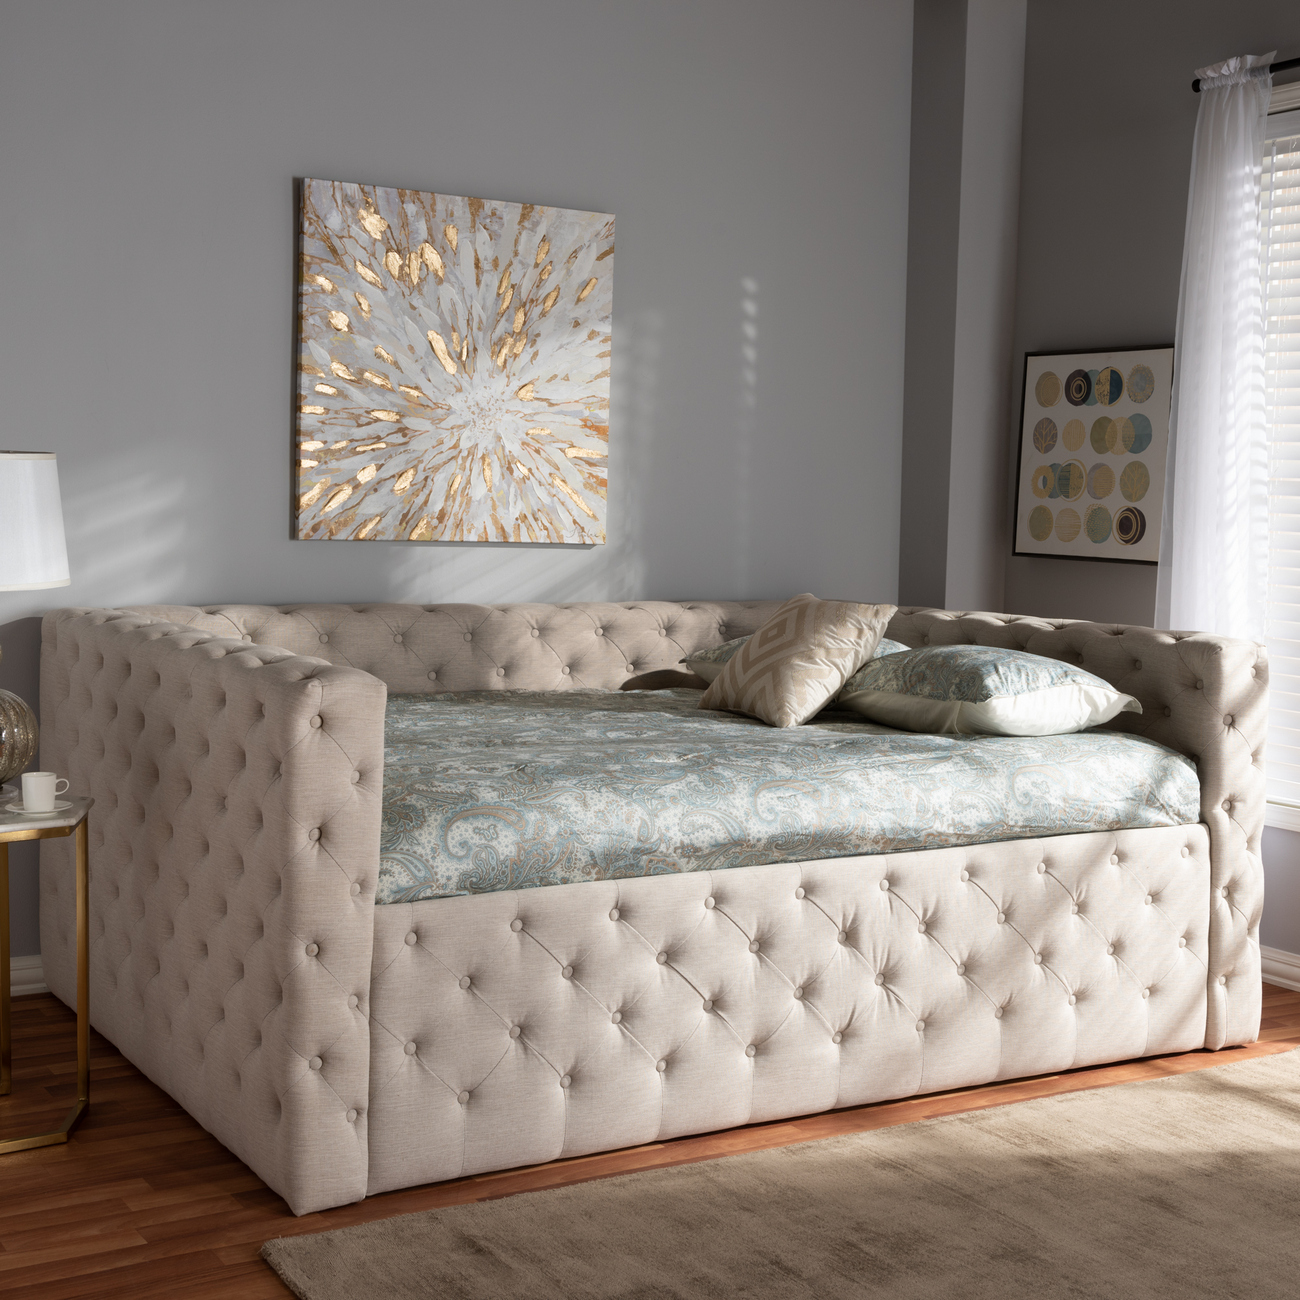 Light Beige Fabric Upholstered Daybed